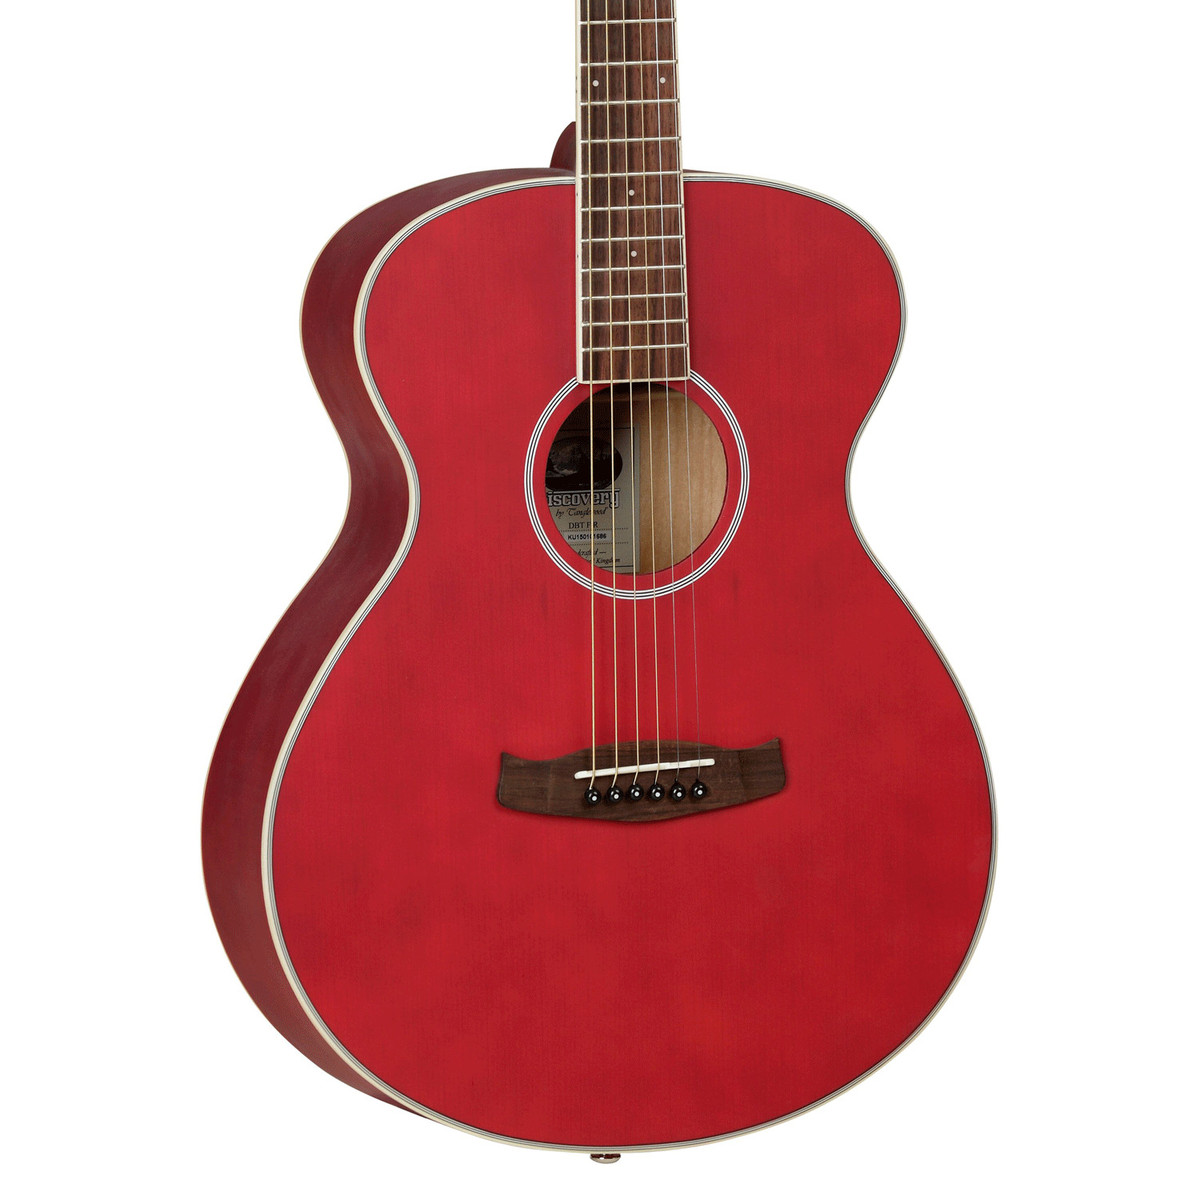 Tanglewood discovery dbtfrd guitare acoustique rouge mat for The tanglewood